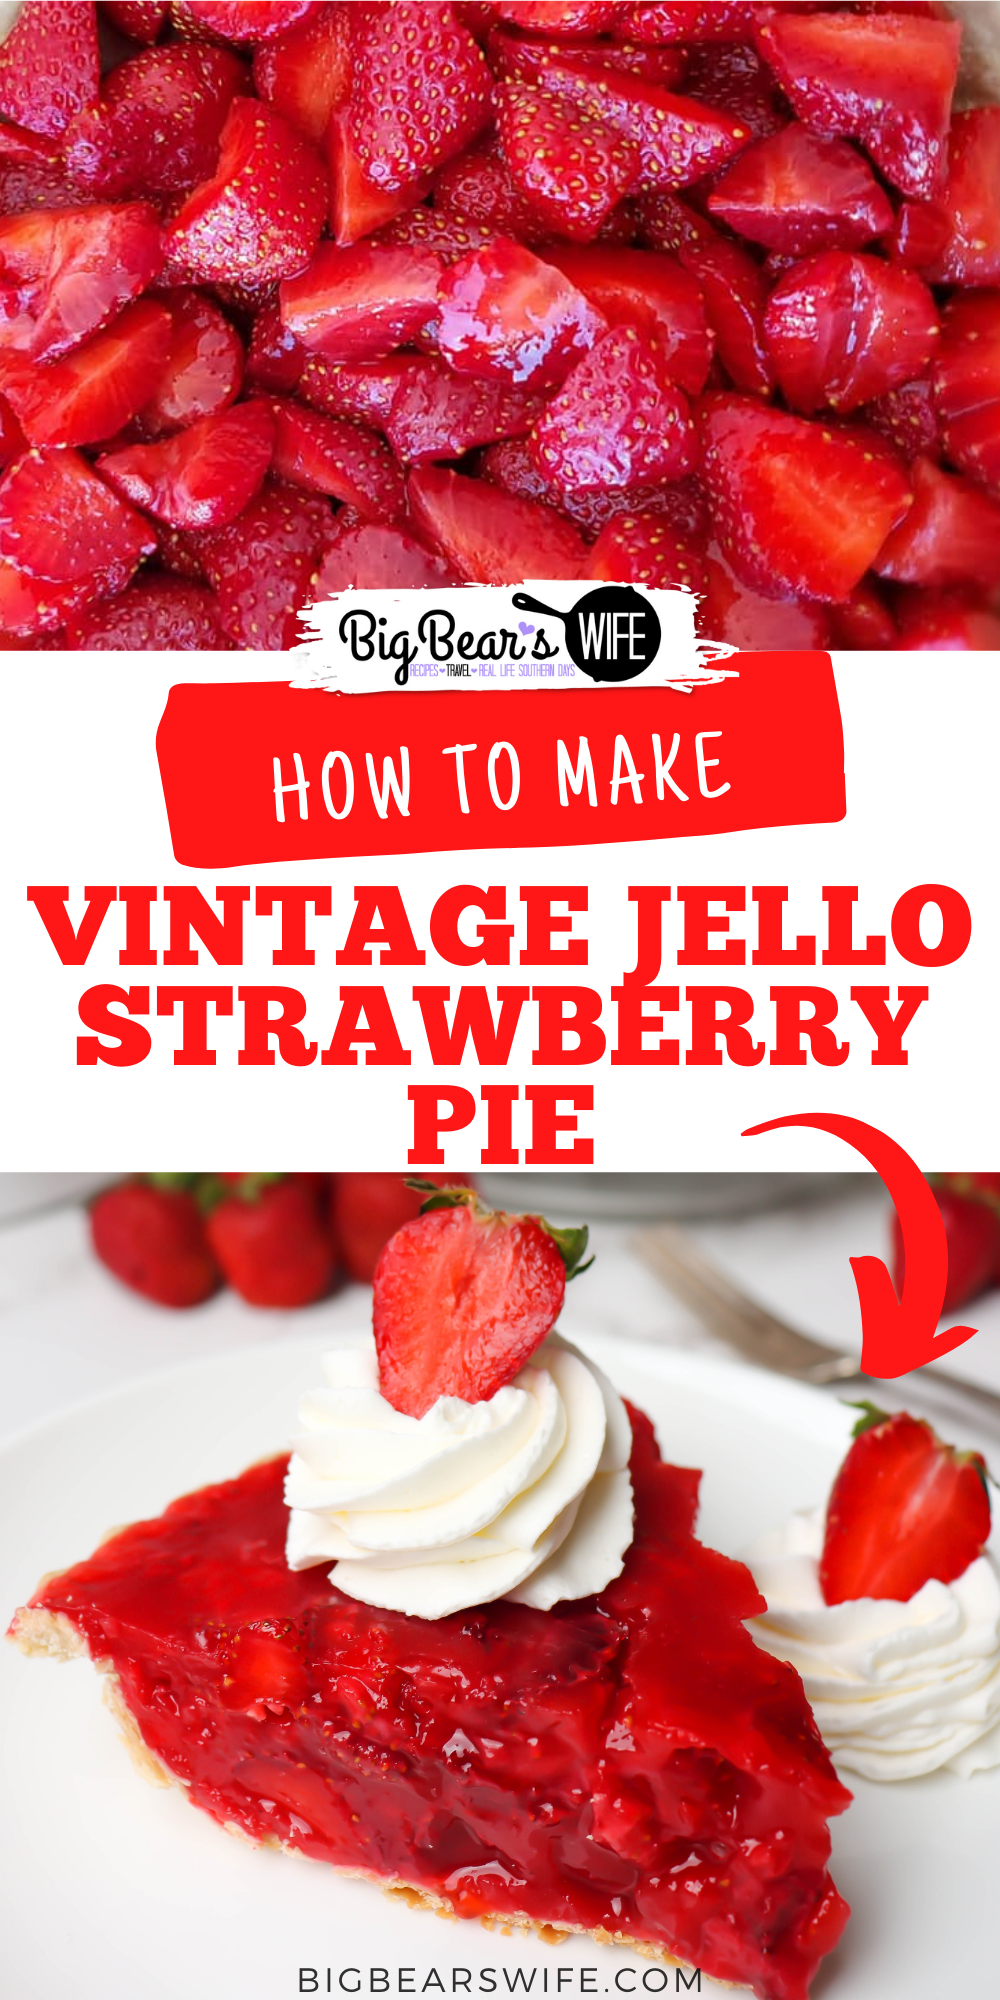 This easy Vintage Jello Strawberry Pie is the perfect dessert to make with all of those fresh summer strawberries! This pie reminded me of the Shoney'sStrawberry Pie that we use to get as kids! via @bigbearswife